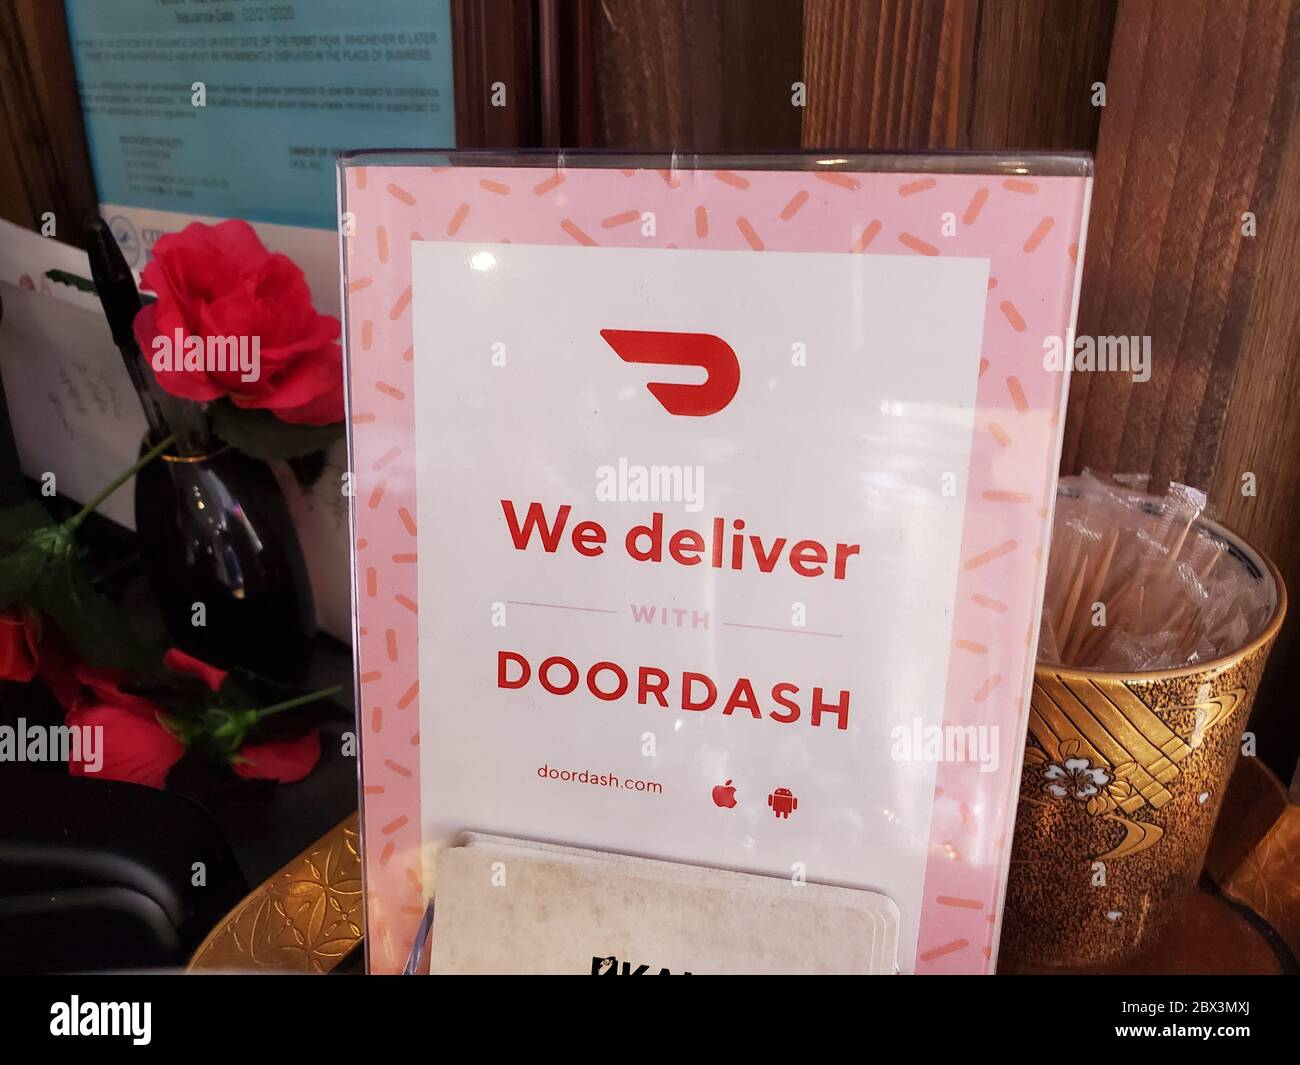 Sign reading We Deliver on Doordash in a restaurant setting, San Ramon, California, April 17, 2020. () Stock Photo